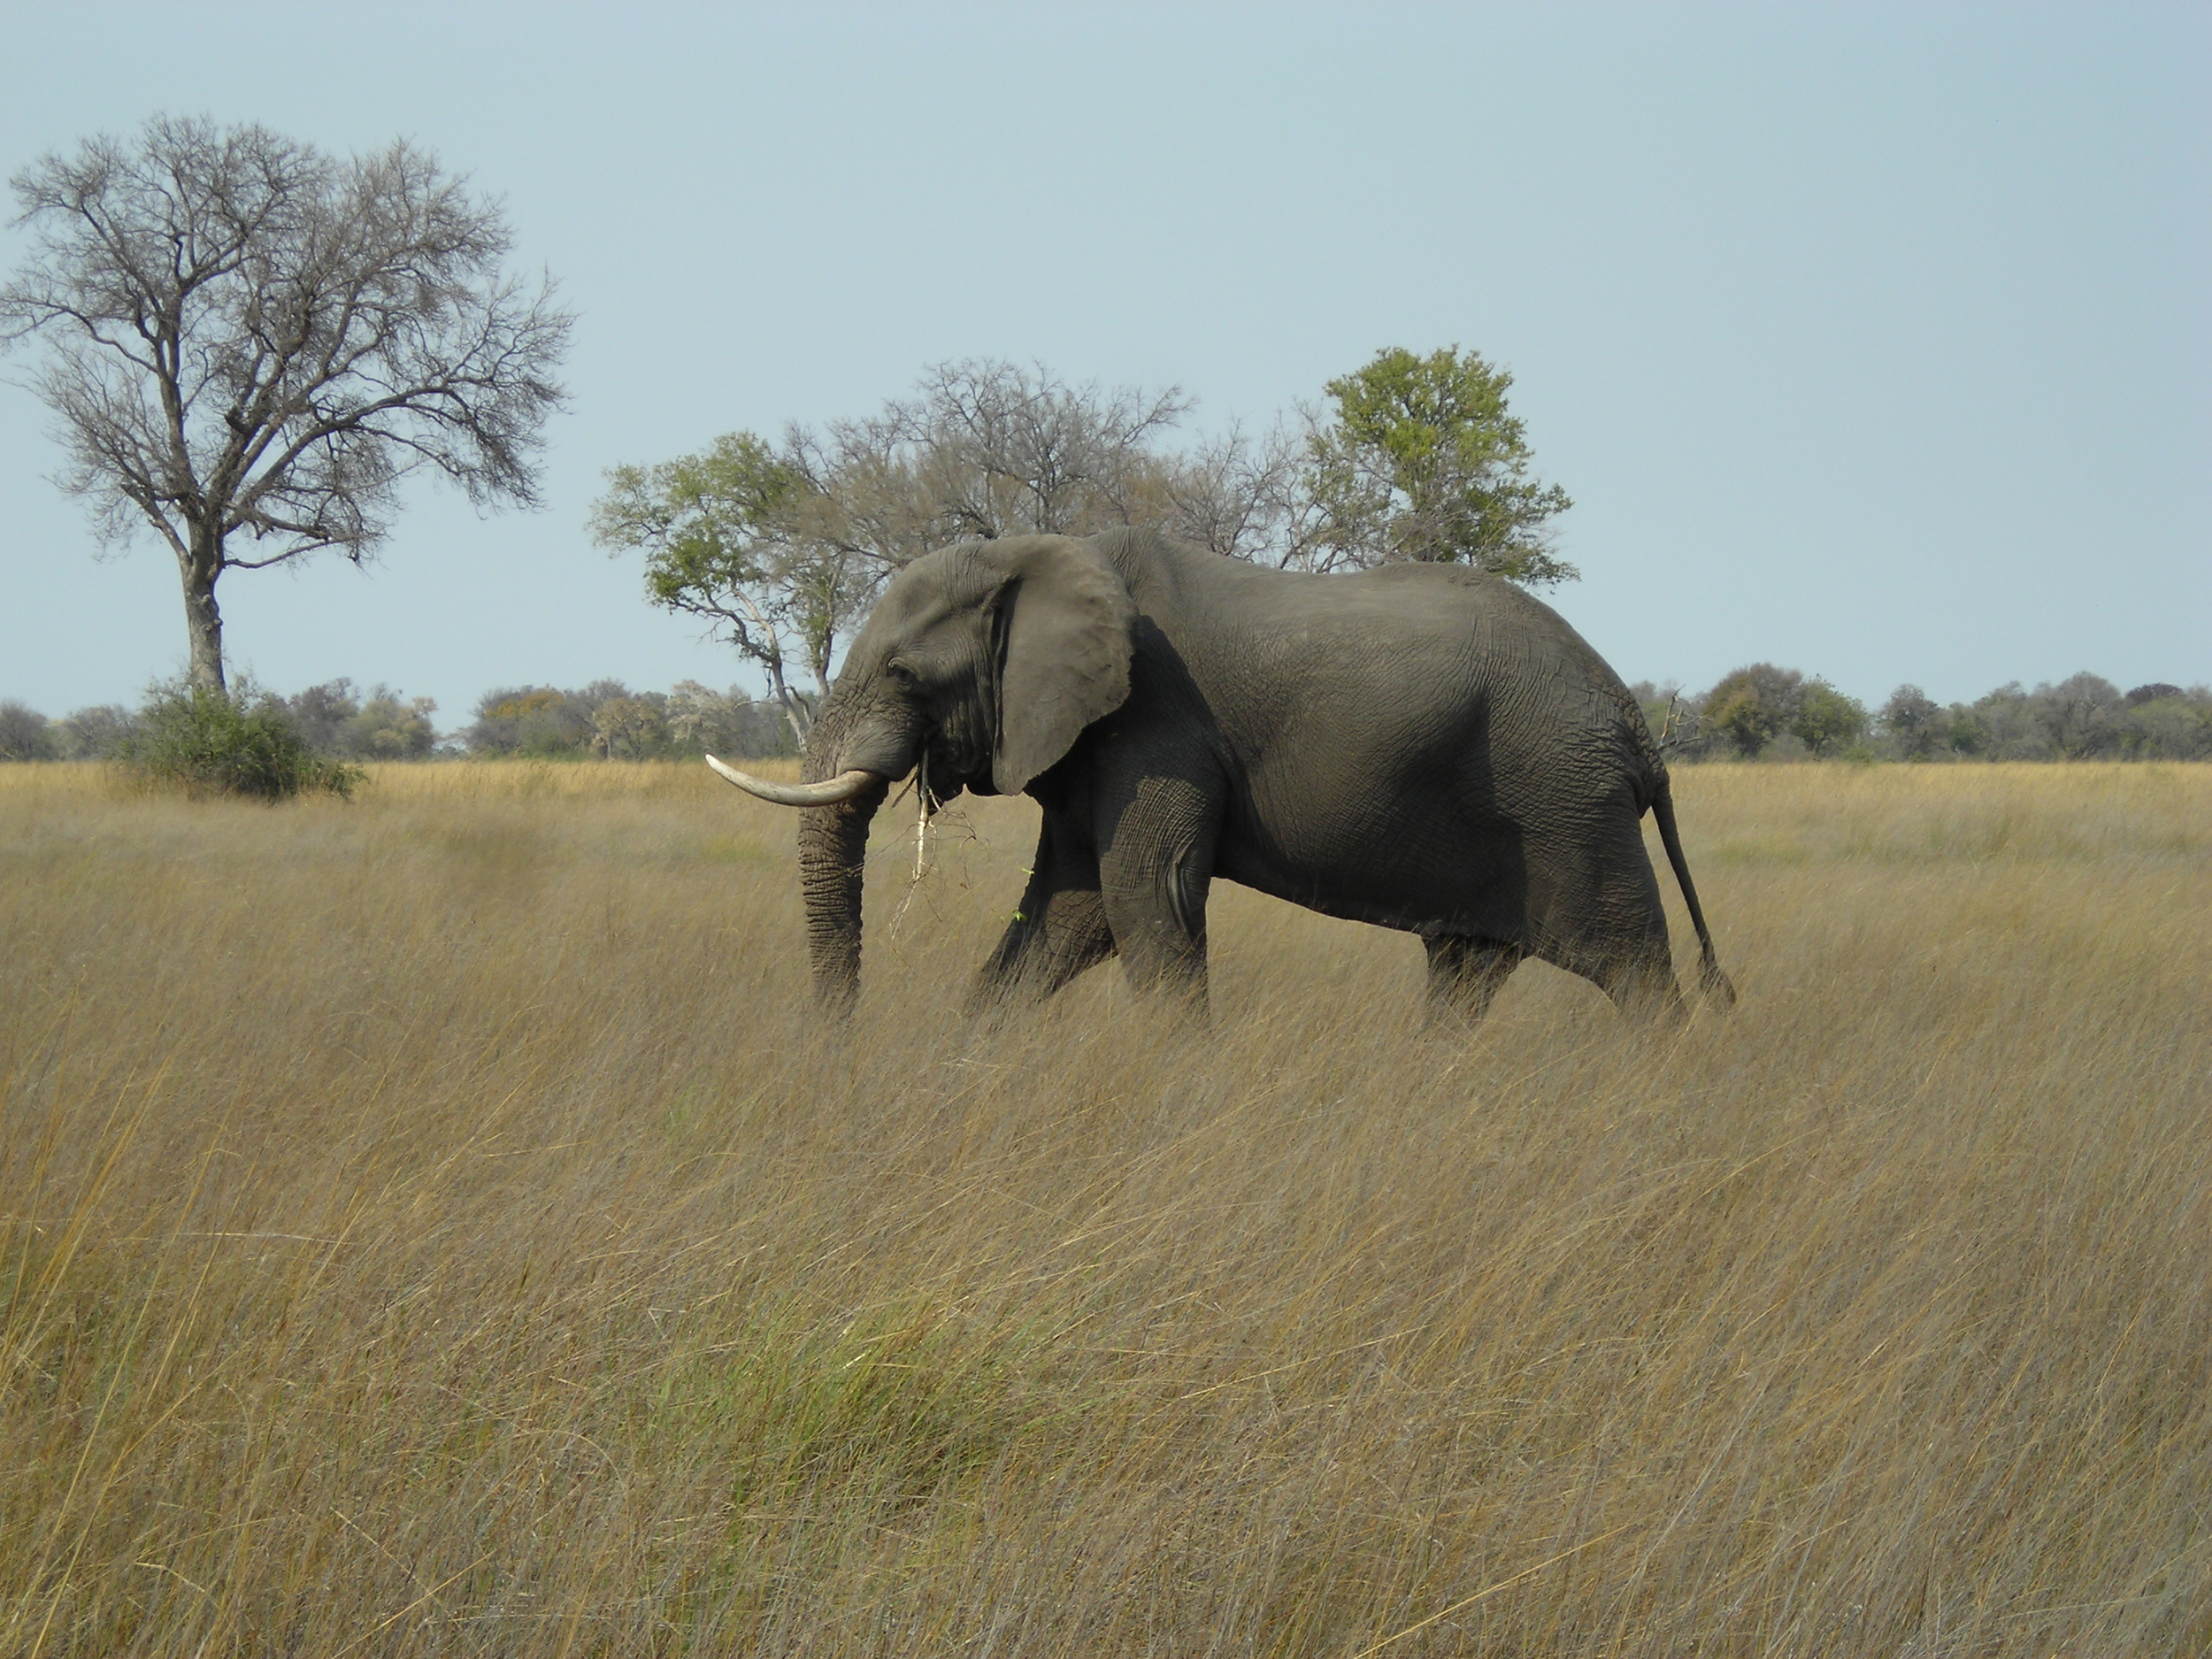 An elephant we encountered when travelling in Botswana